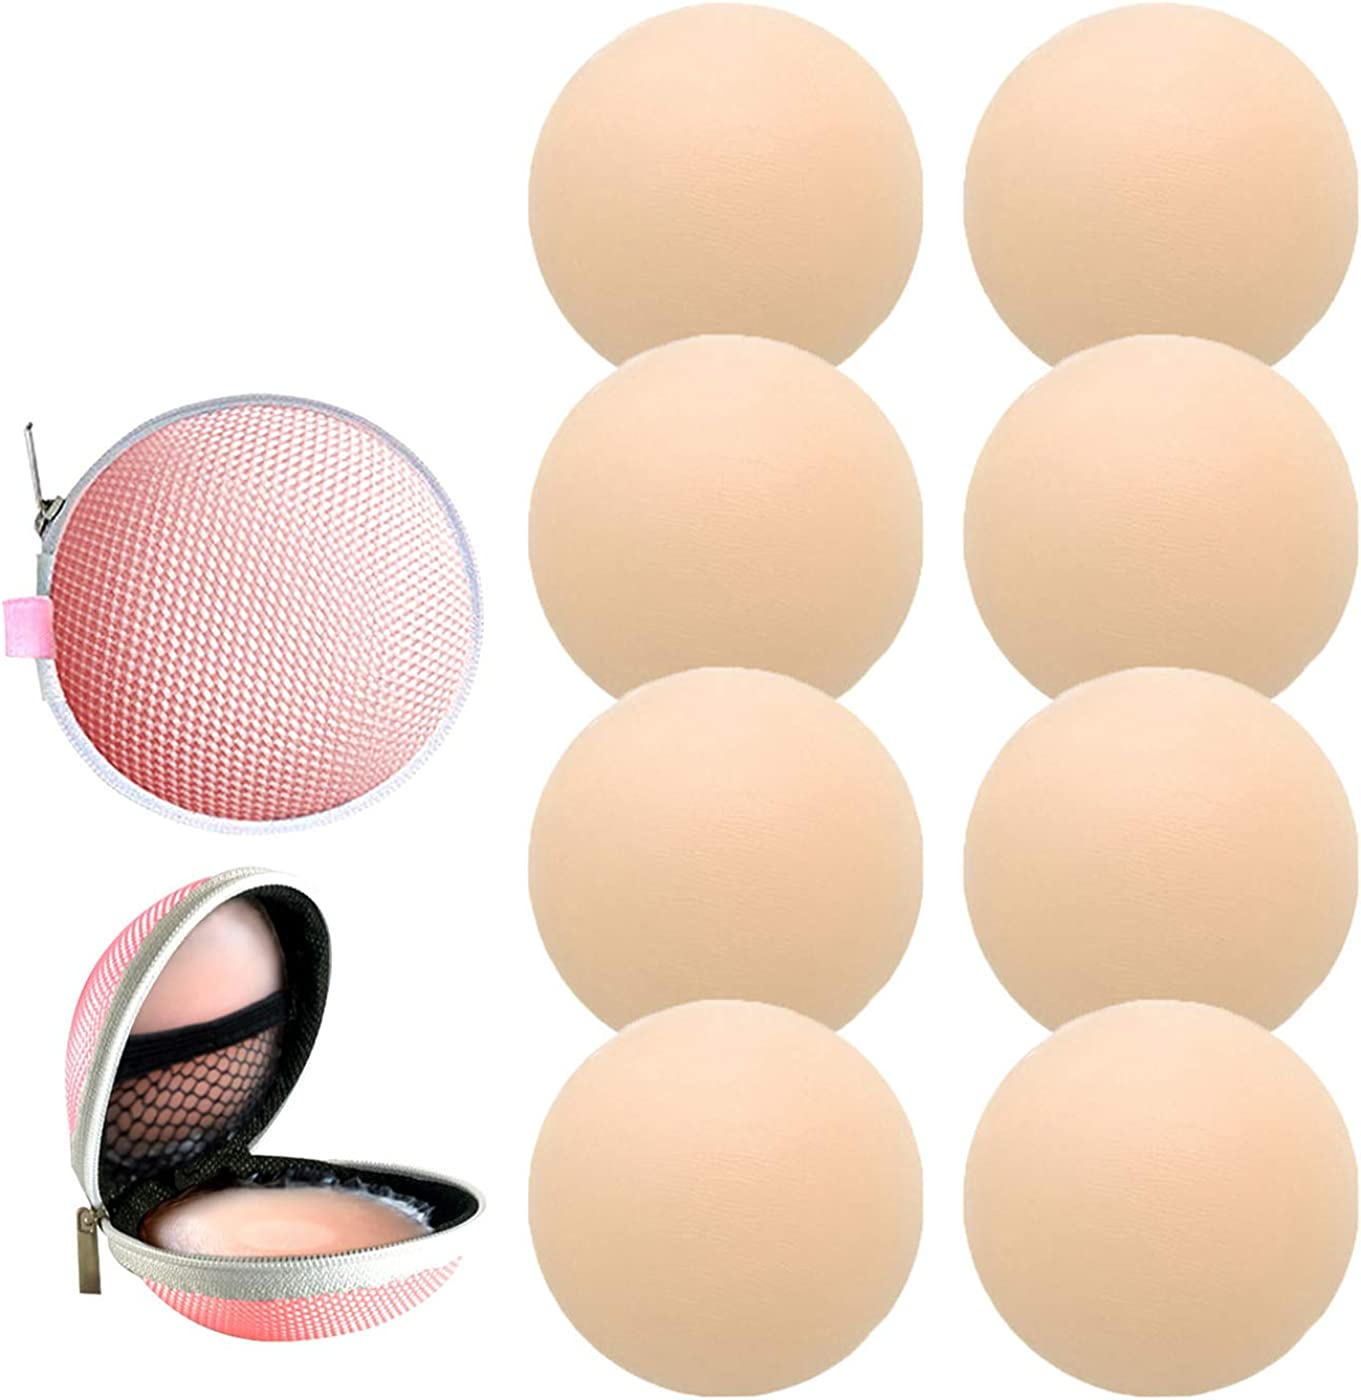 4 Pairs Womens Reusable Adhesive Nipple Covers Invisible Round Silicone Cover (4Round)